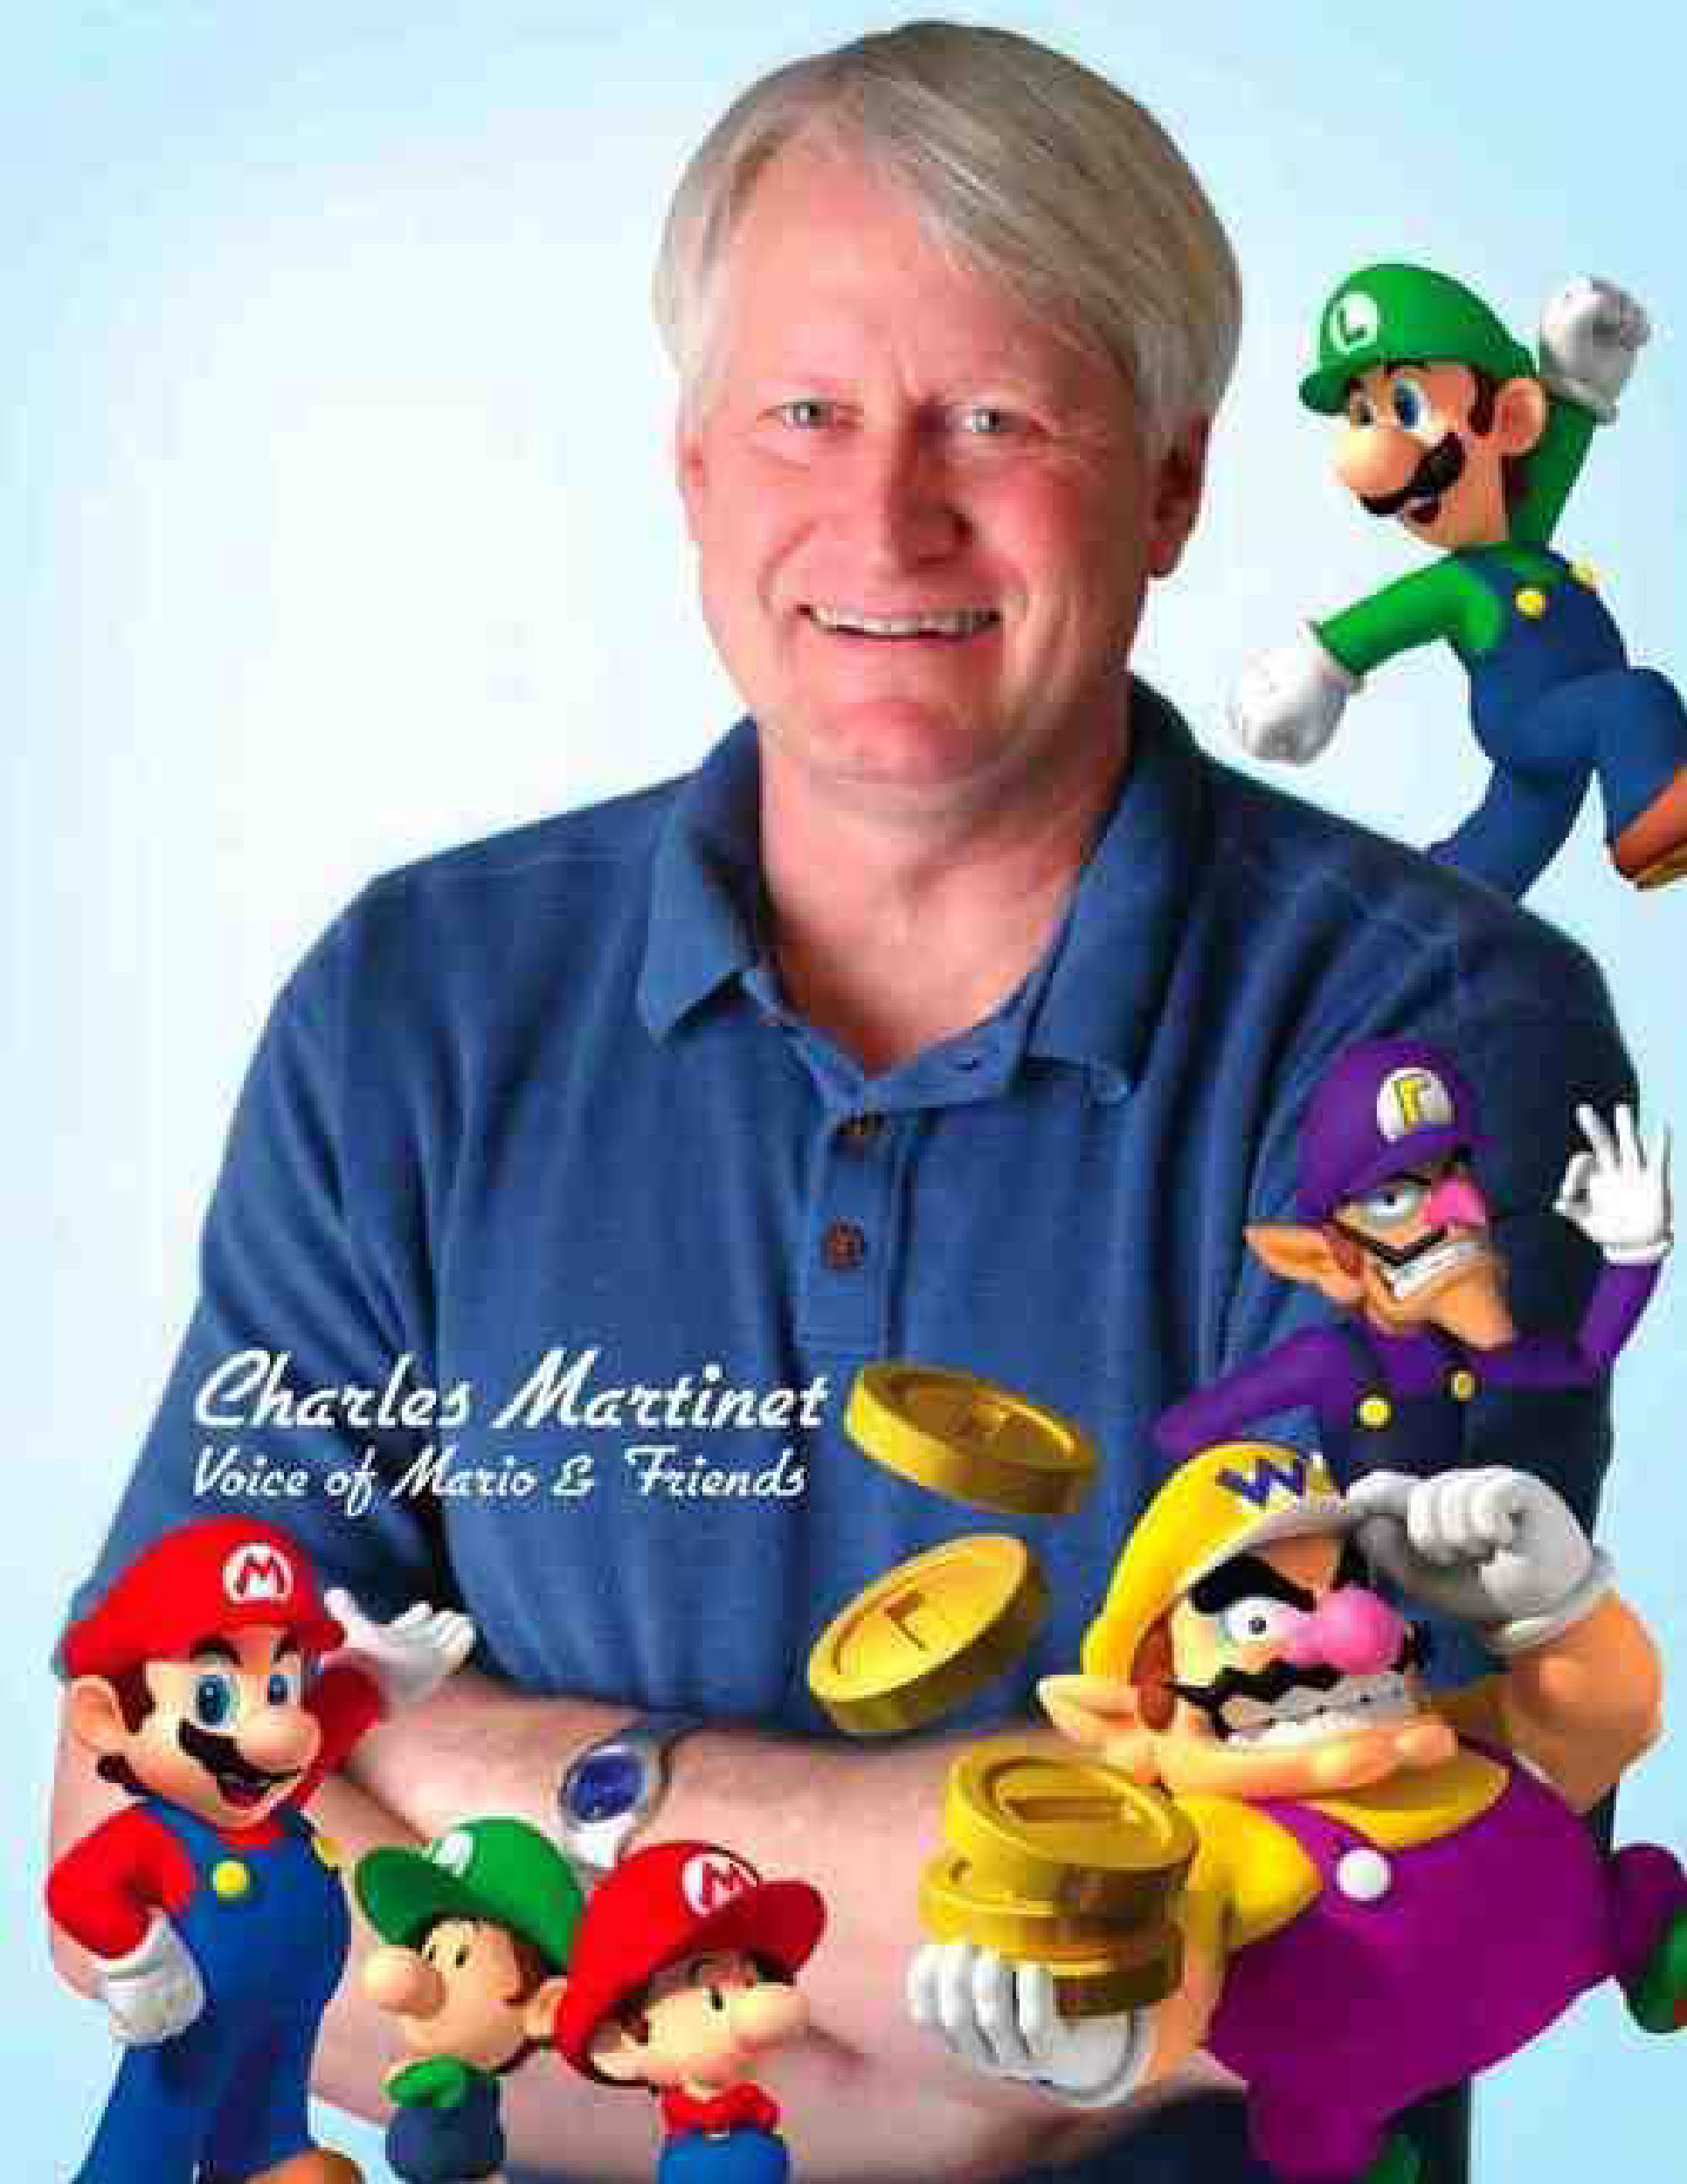 Charles martinet had brought fun for me growing up